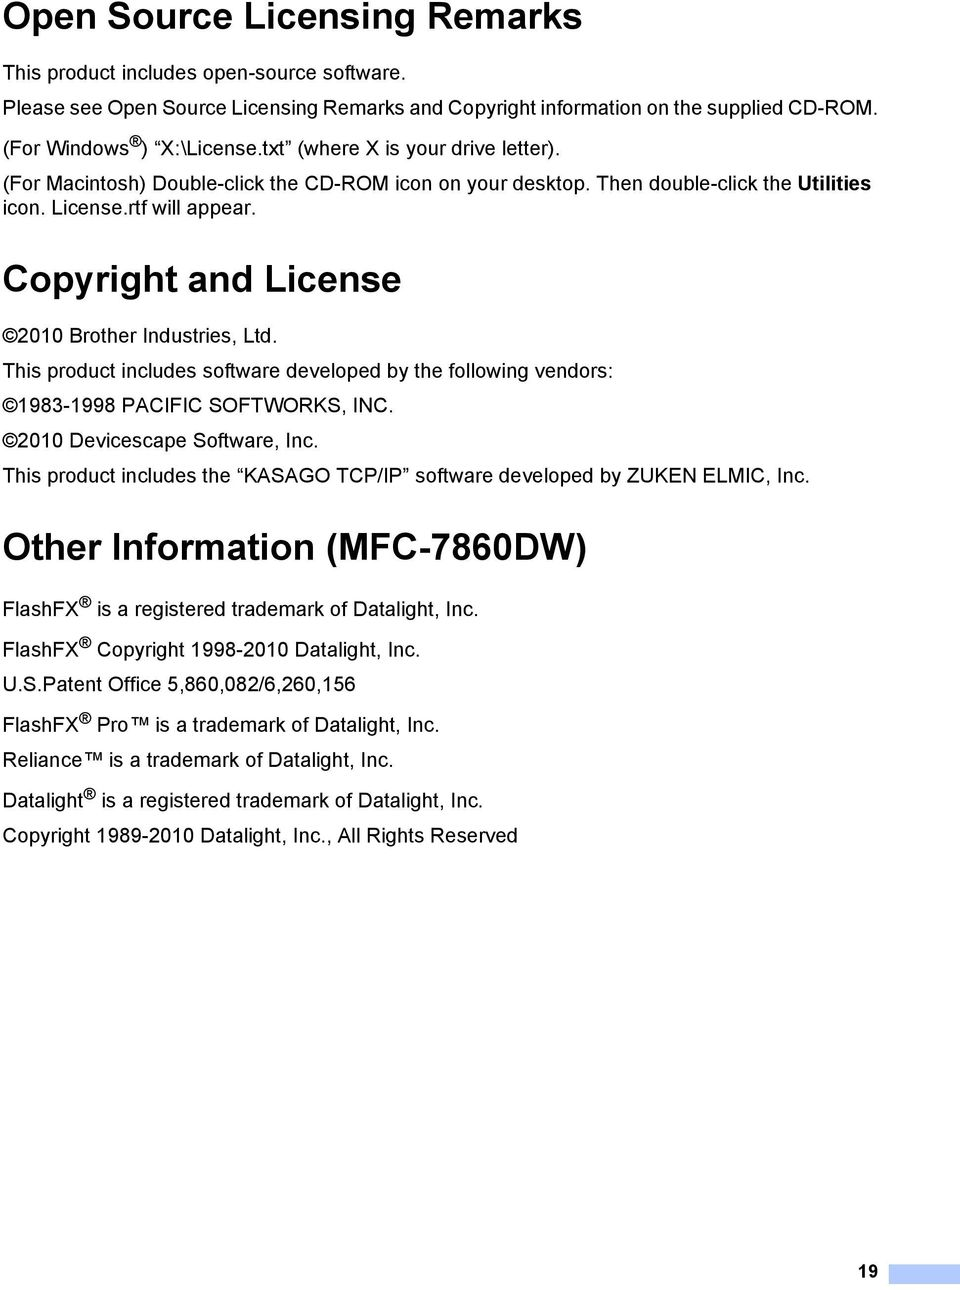 Copyright and License A 2010 Brother Industries, Ltd. This product includes software developed by the following vendors: 1983-1998 PACIFIC SOFTWORKS, INC. 2010 Devicescape Software, Inc.